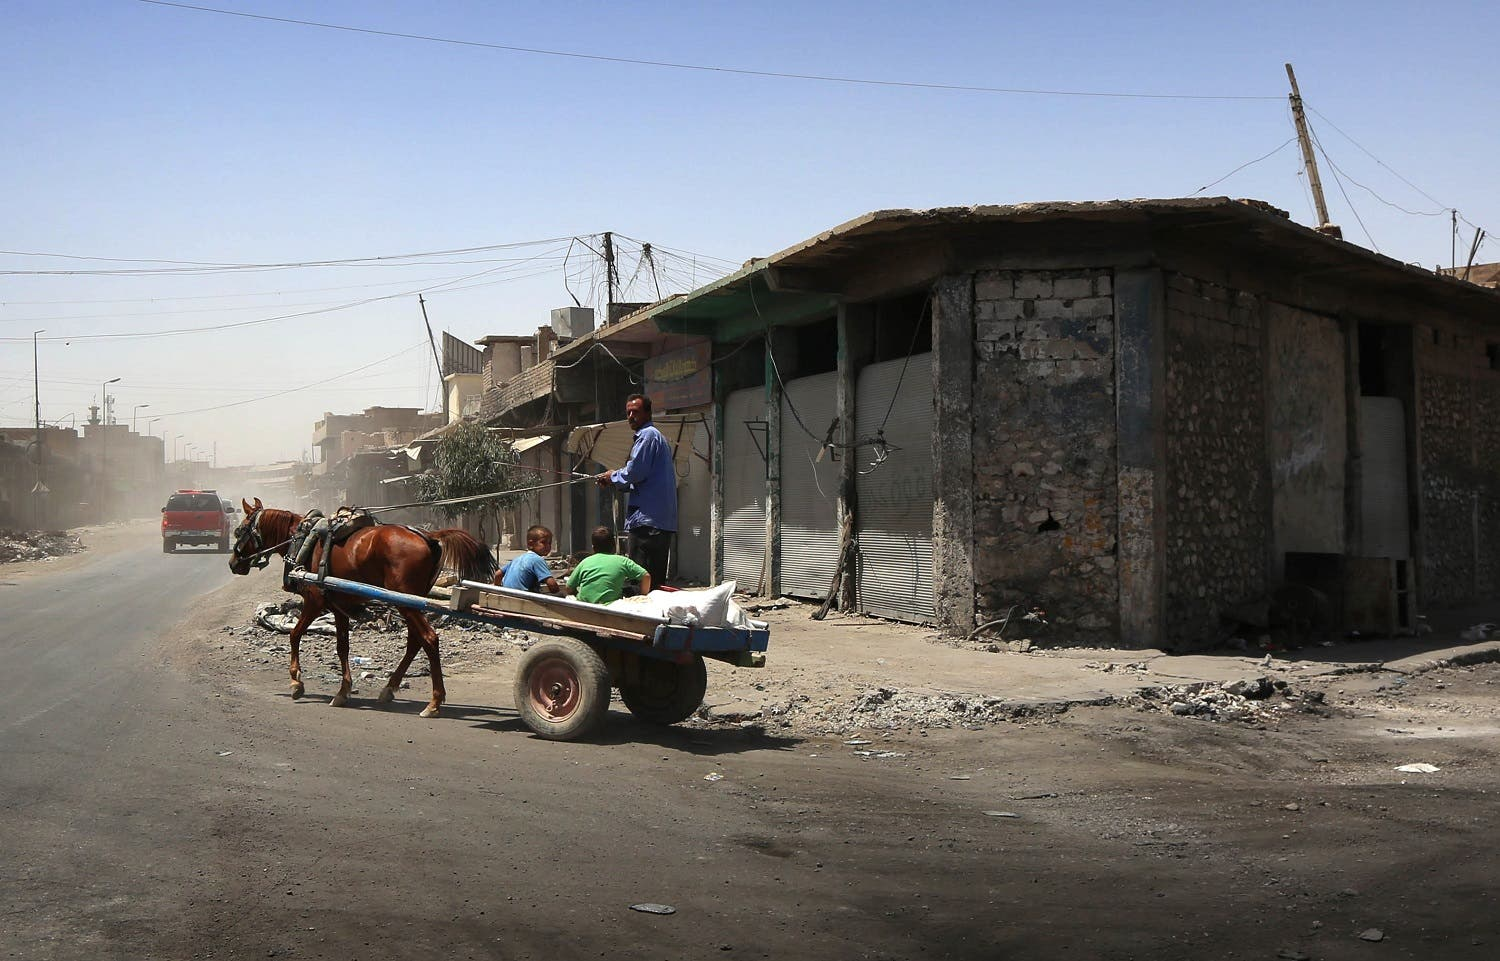 Iraqis ride a cart in western Mosul's old city on July 30, 2017. AFP